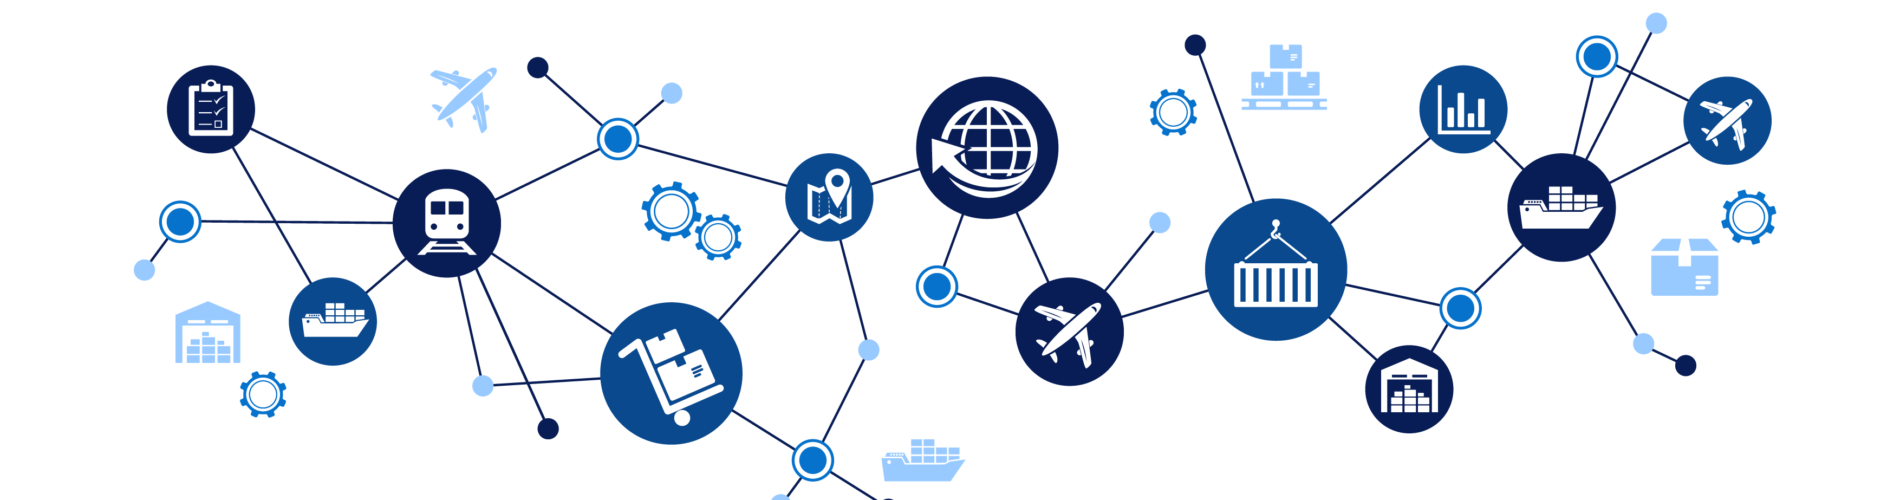 And icon set demonstrating supply chain